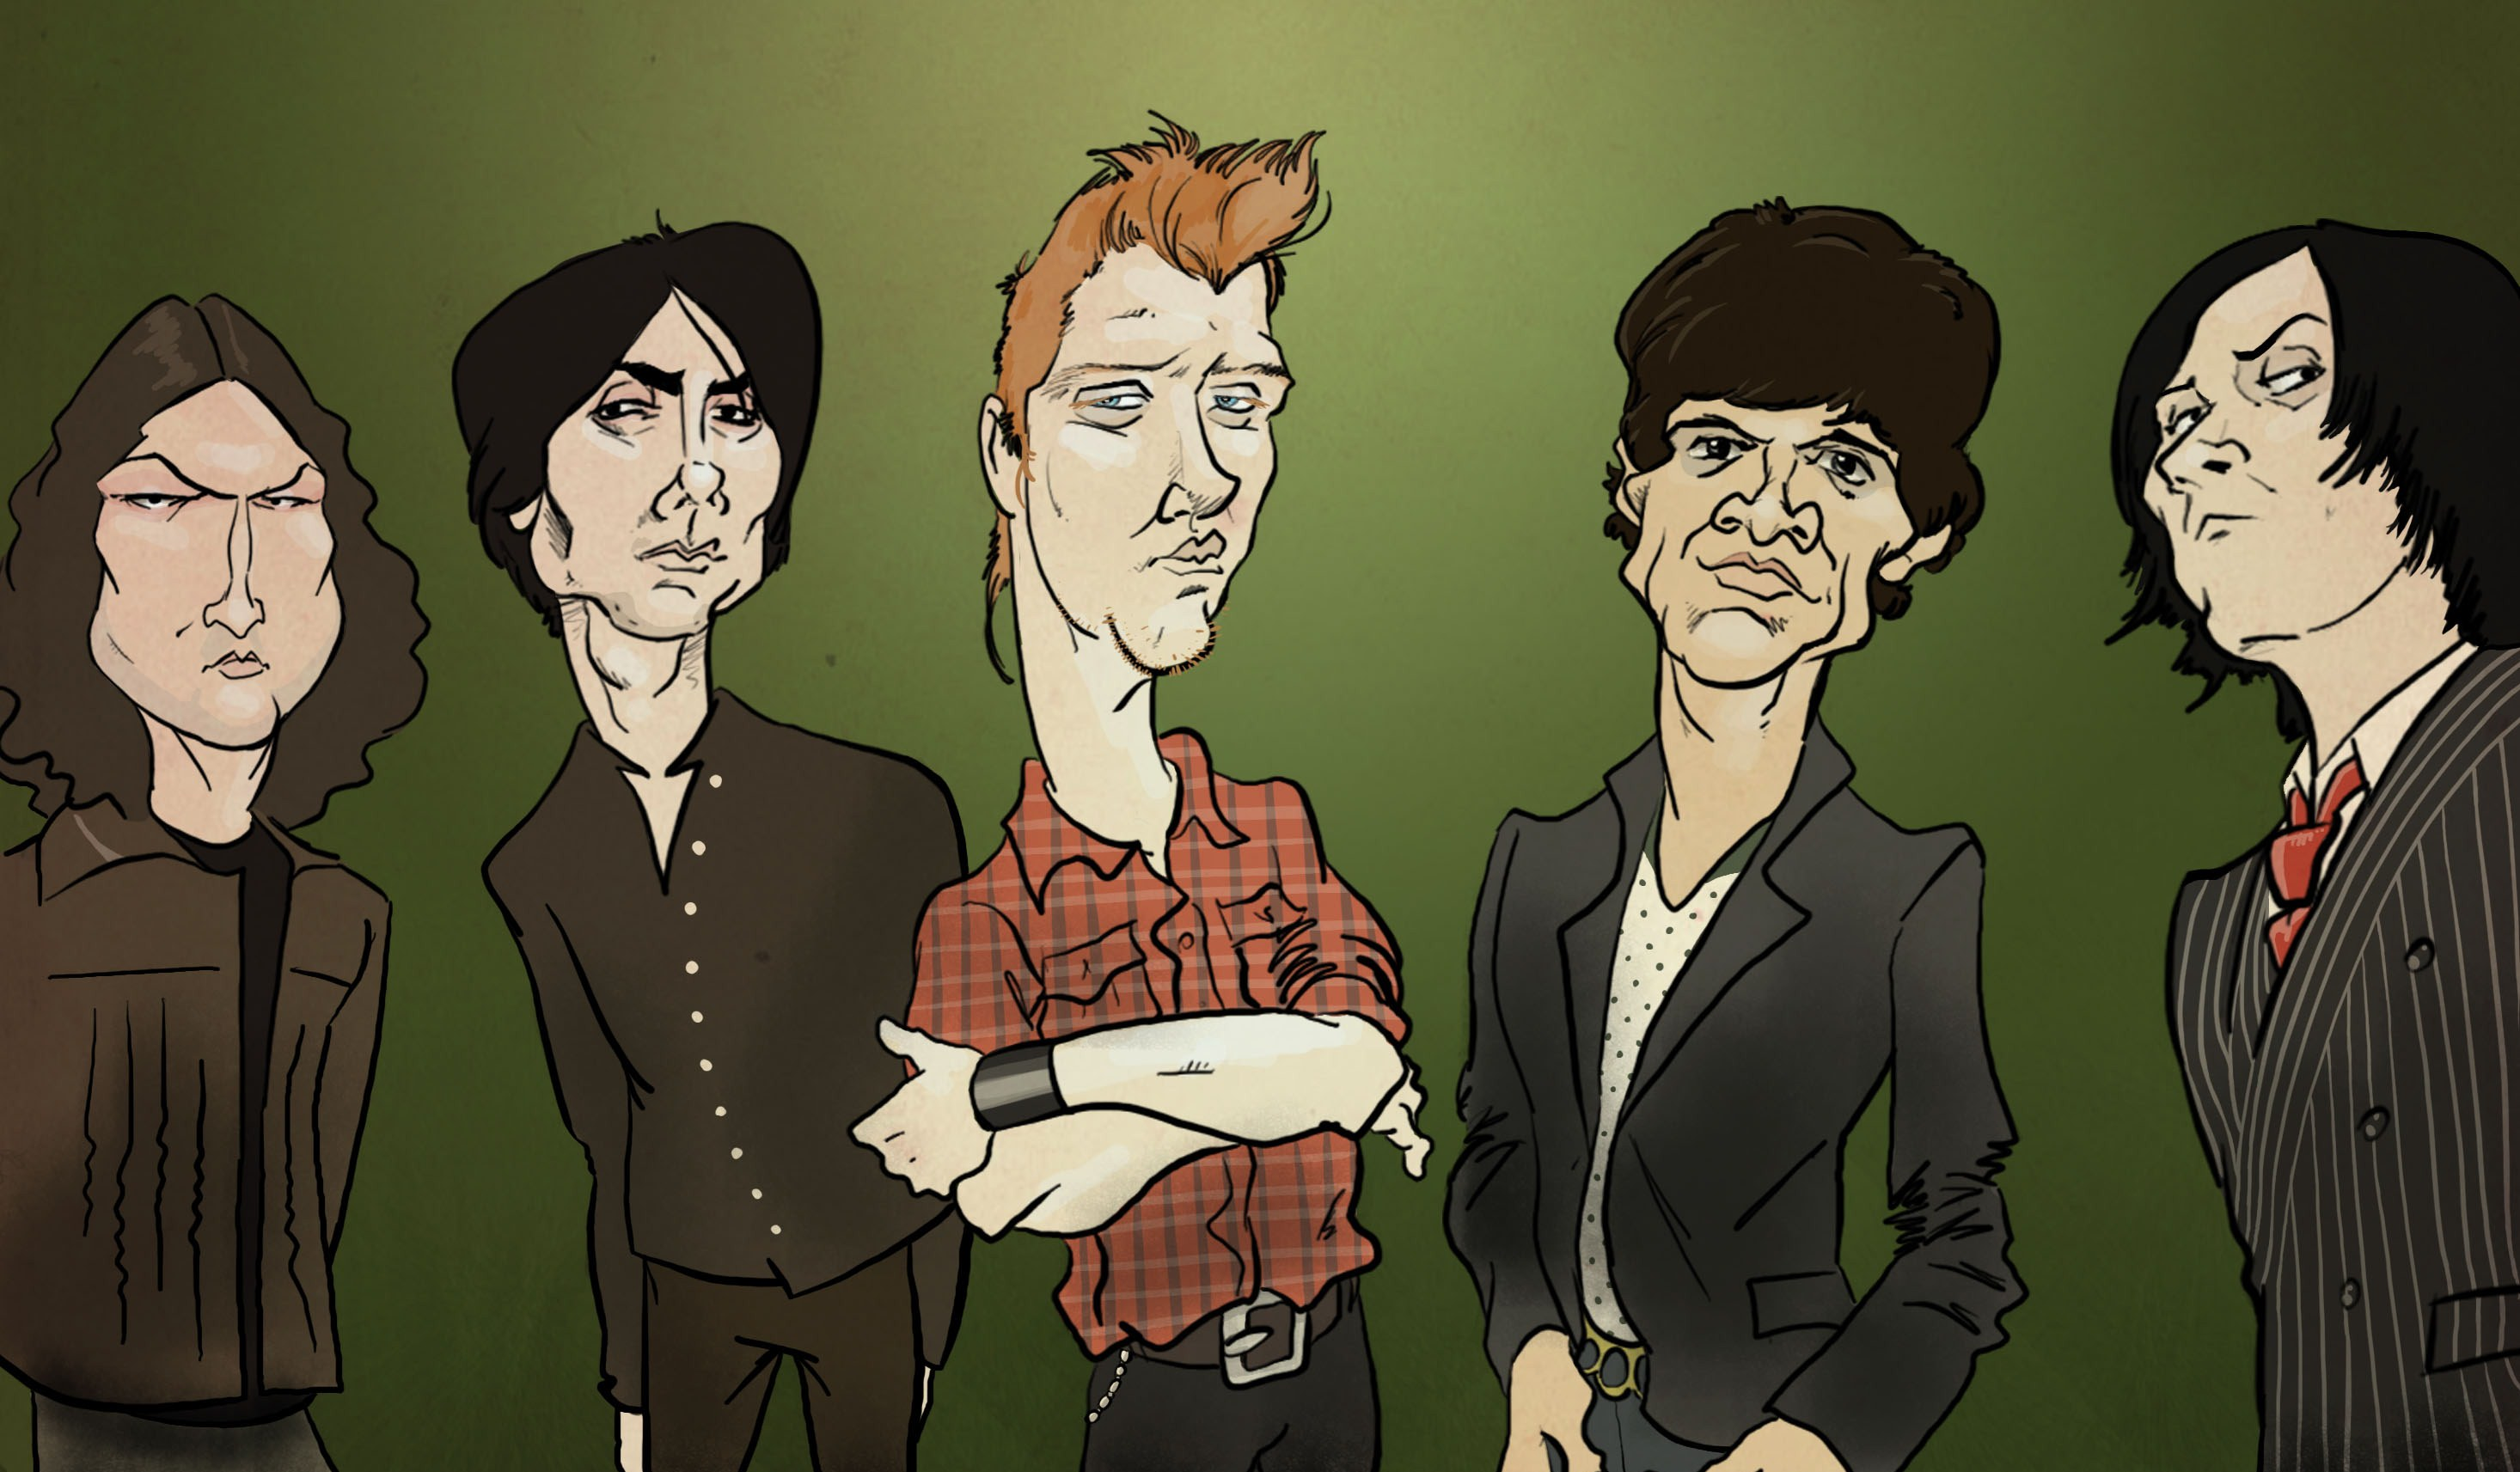 Queens Of The Stone Age cartoon